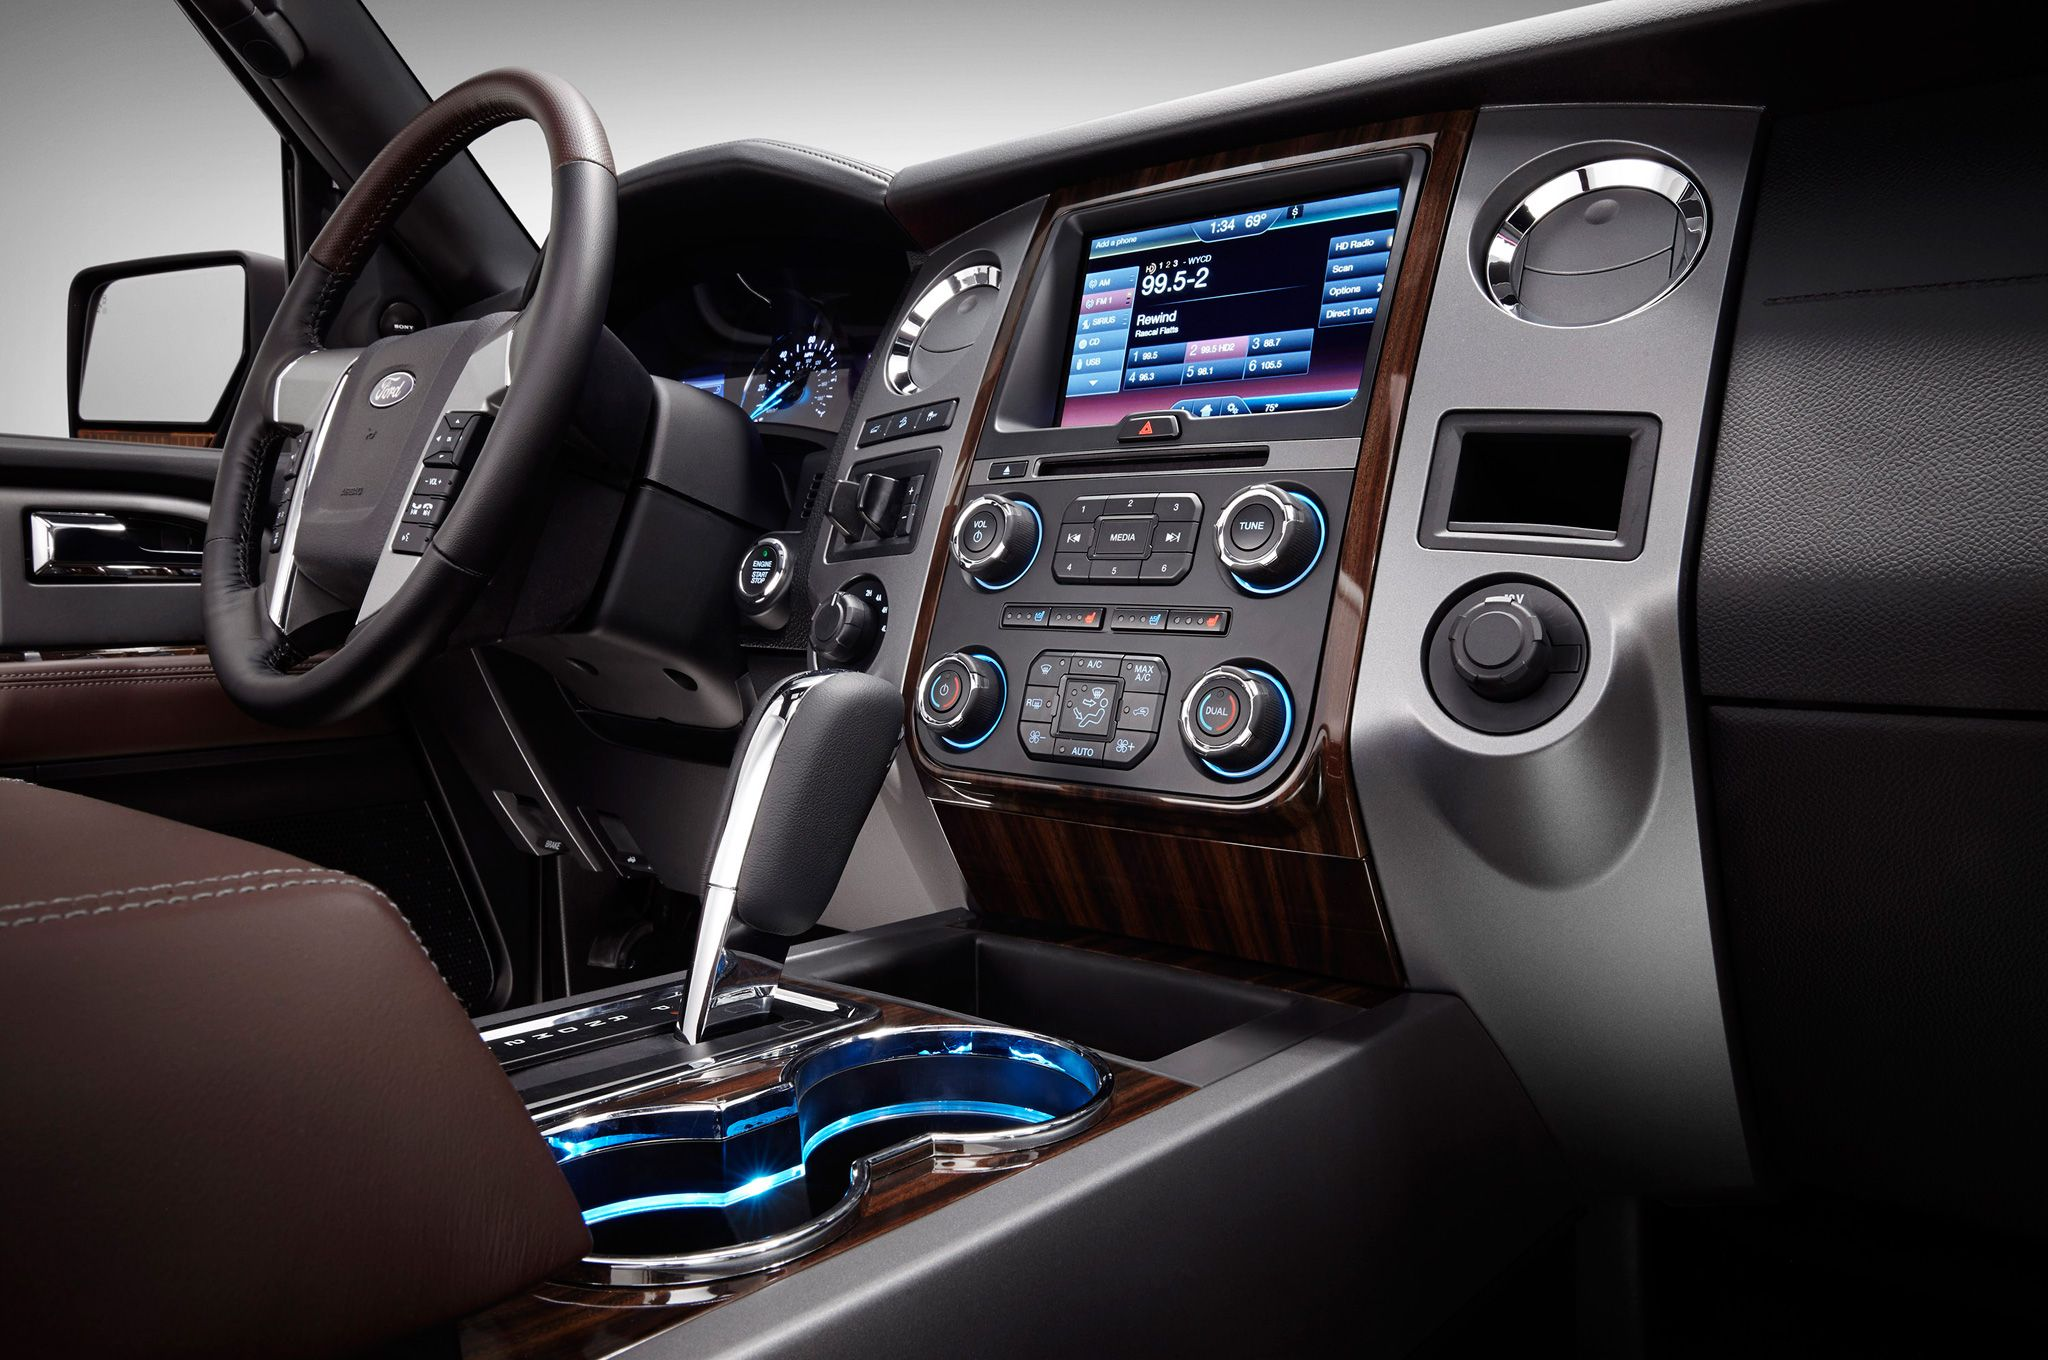 ford expedition suv inside 2015 ford expedition interior center stack - 2015 Ford Explorer Xlt Interior